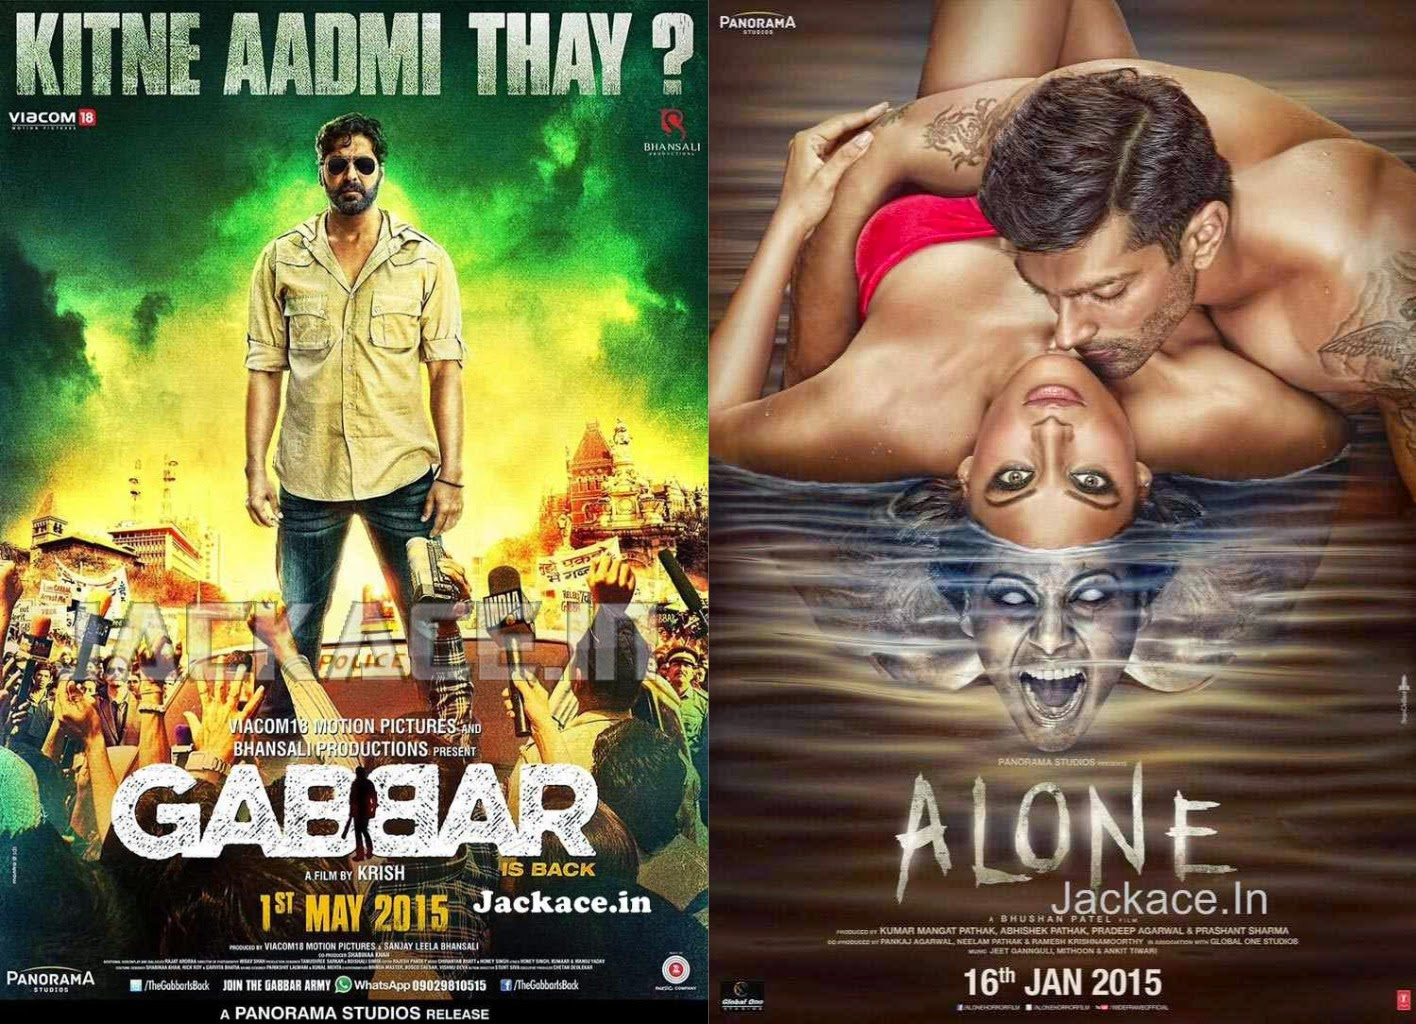 Gabbar is Back Evicts Alone; Becomes 10th Highest Grosser Of 2015